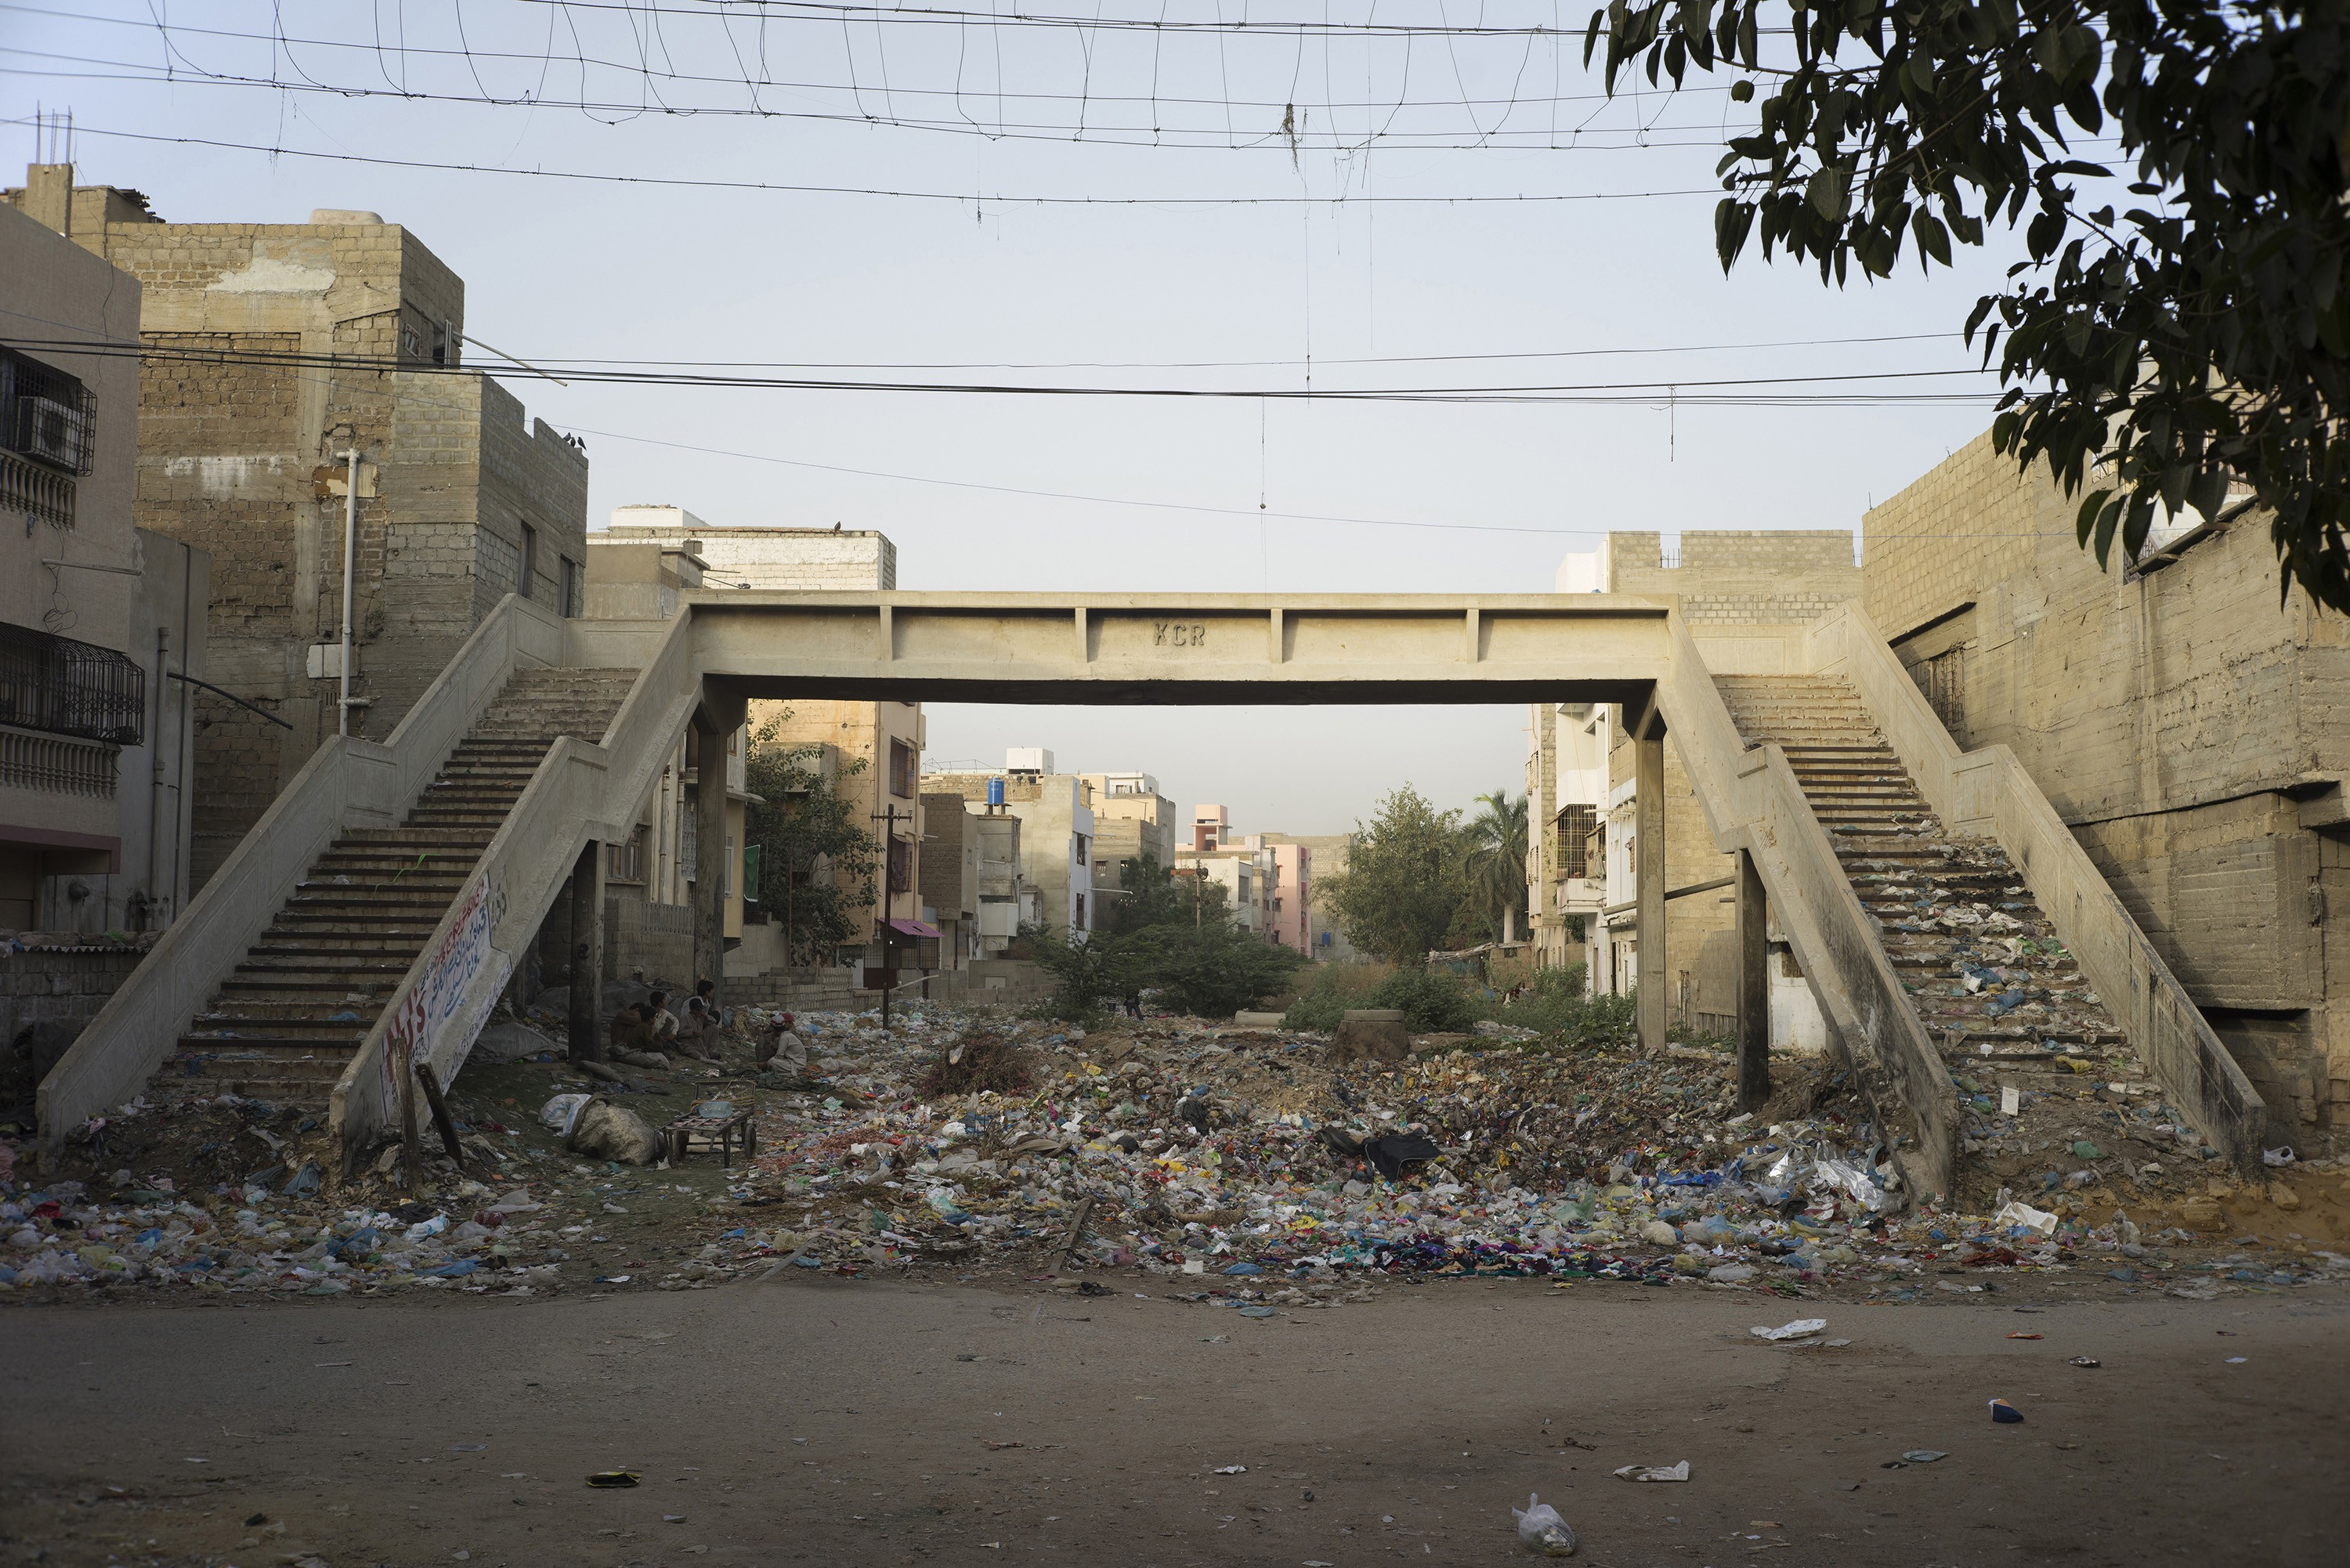 Seeing Karachi Through Its Abandoned Public Railway System By Doug Bierend Vantage Medium